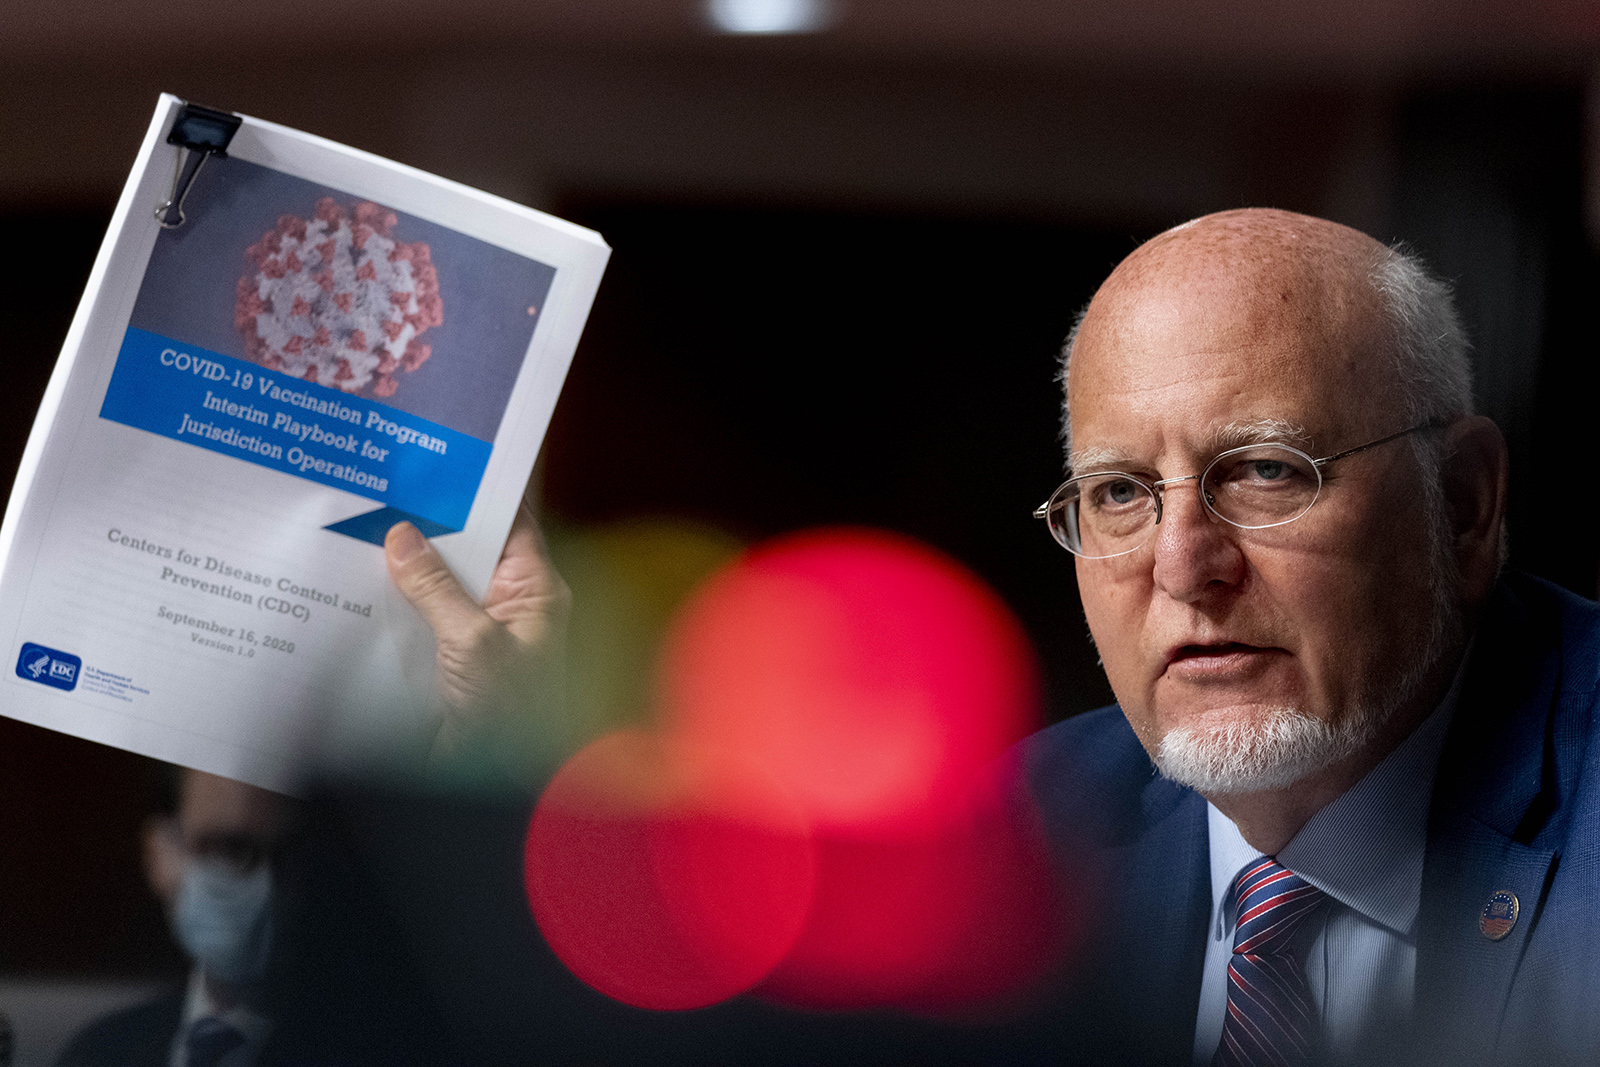 Director Dr. Robert Redfield holds up a CDC document while he speaks at a hearing of the Senate Appropriations subcommittee reviewing coronavirus response efforts on Wednesday in Washington.